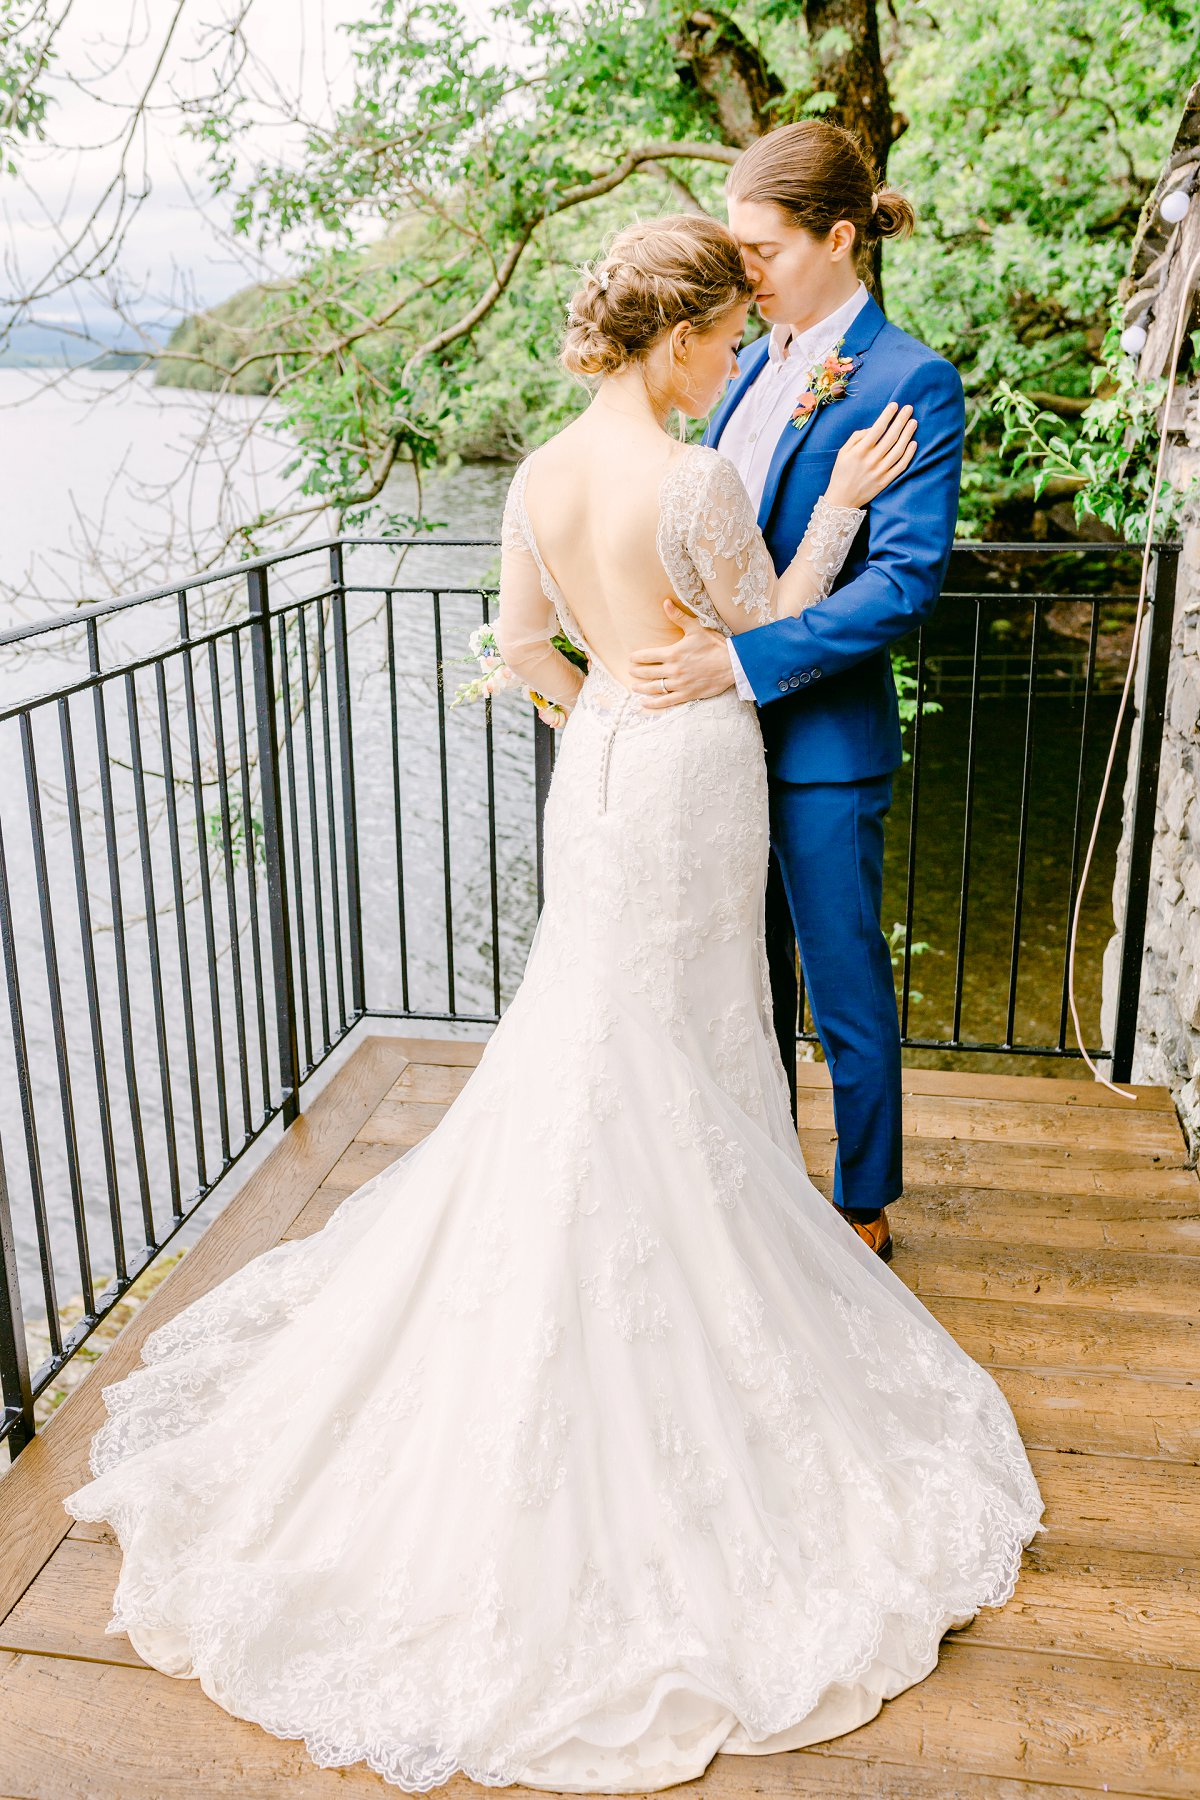 A Styled Wedding Shoot at Town Head Estate Windermere (c) Ailsa Reeve Photography (12)